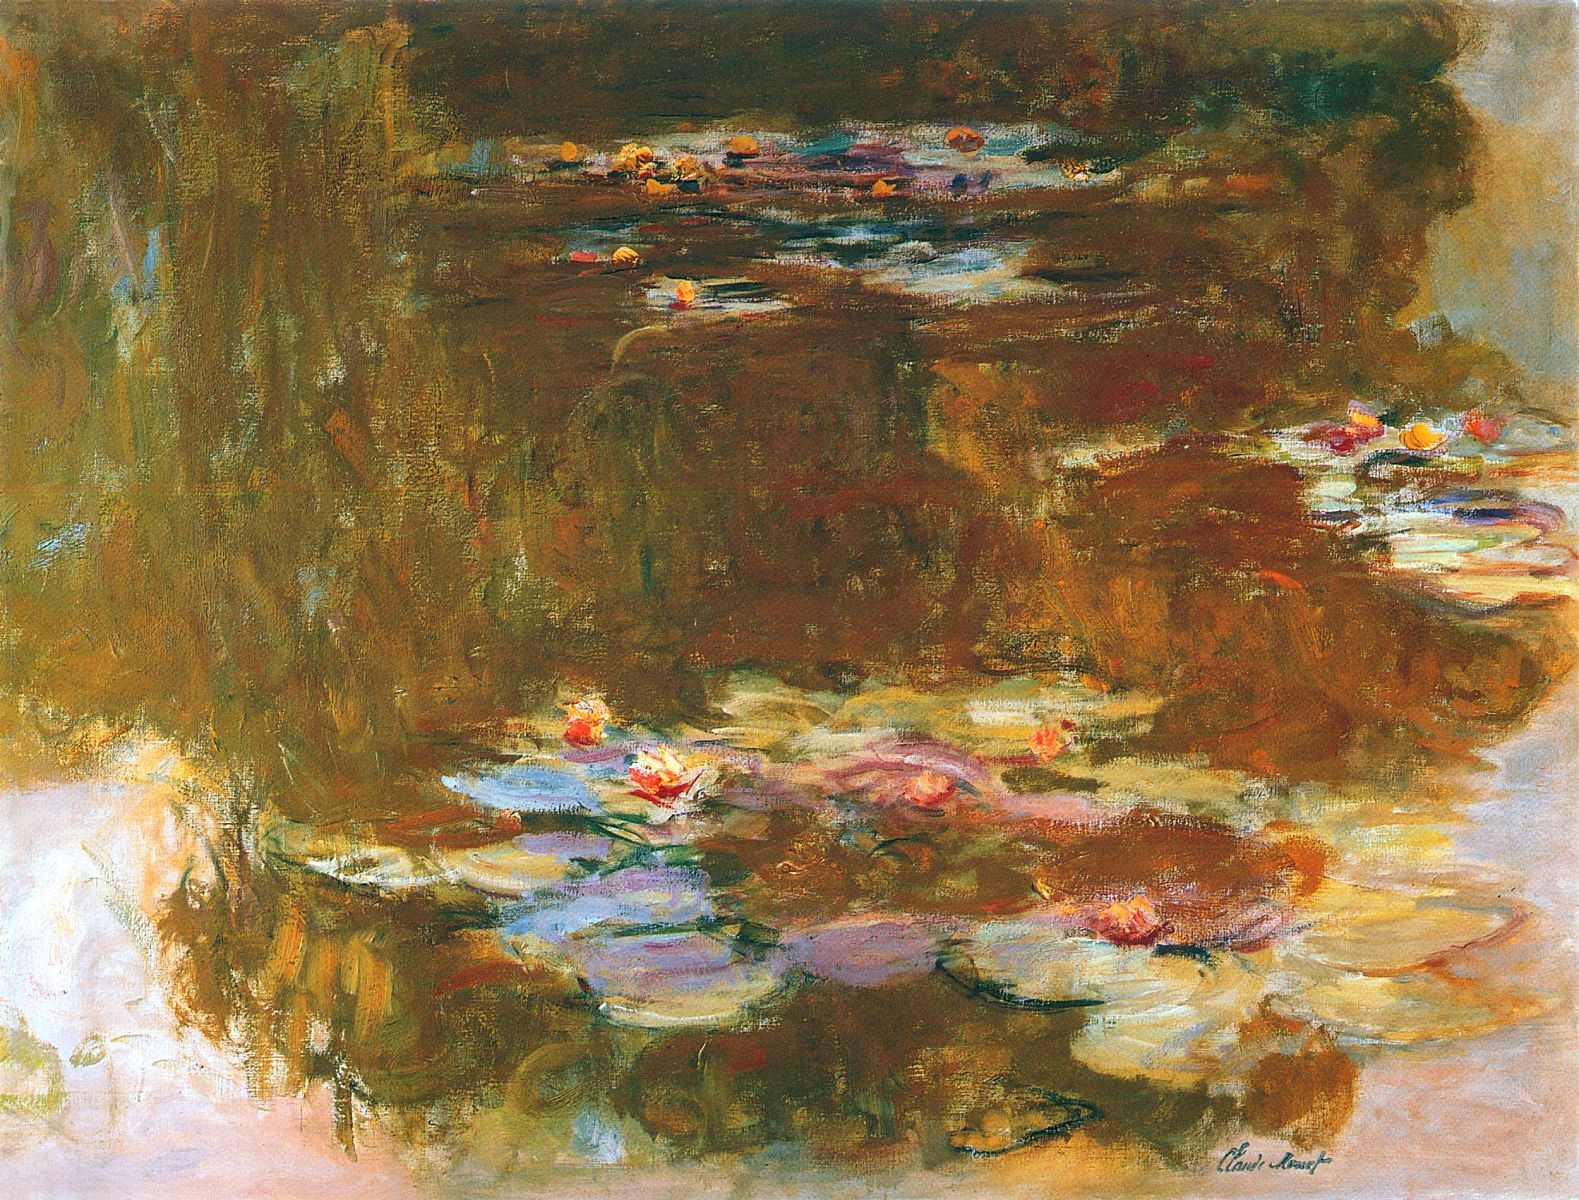 Water Lily Pond, 1917 - Claude Monet - WikiArt.org